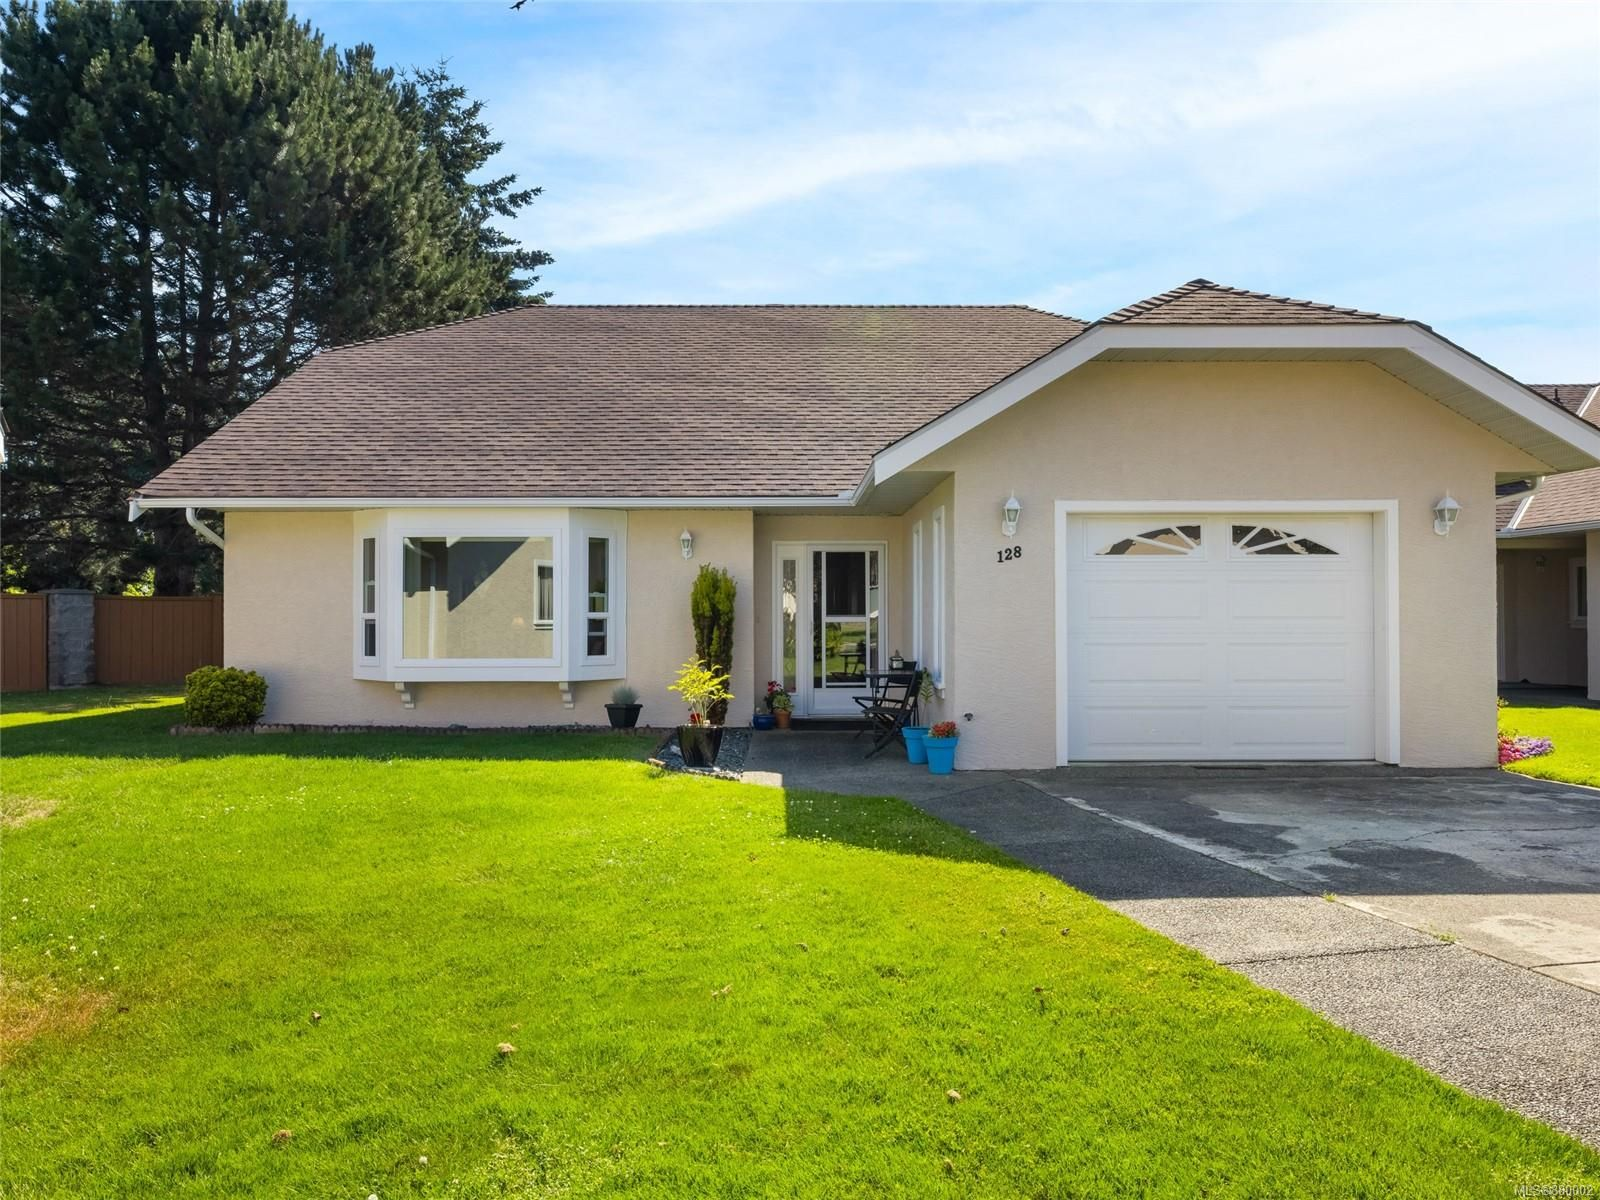 Main Photo: 128 635 Blenkin Ave in : PQ Parksville Row/Townhouse for sale (Parksville/Qualicum)  : MLS®# 880002